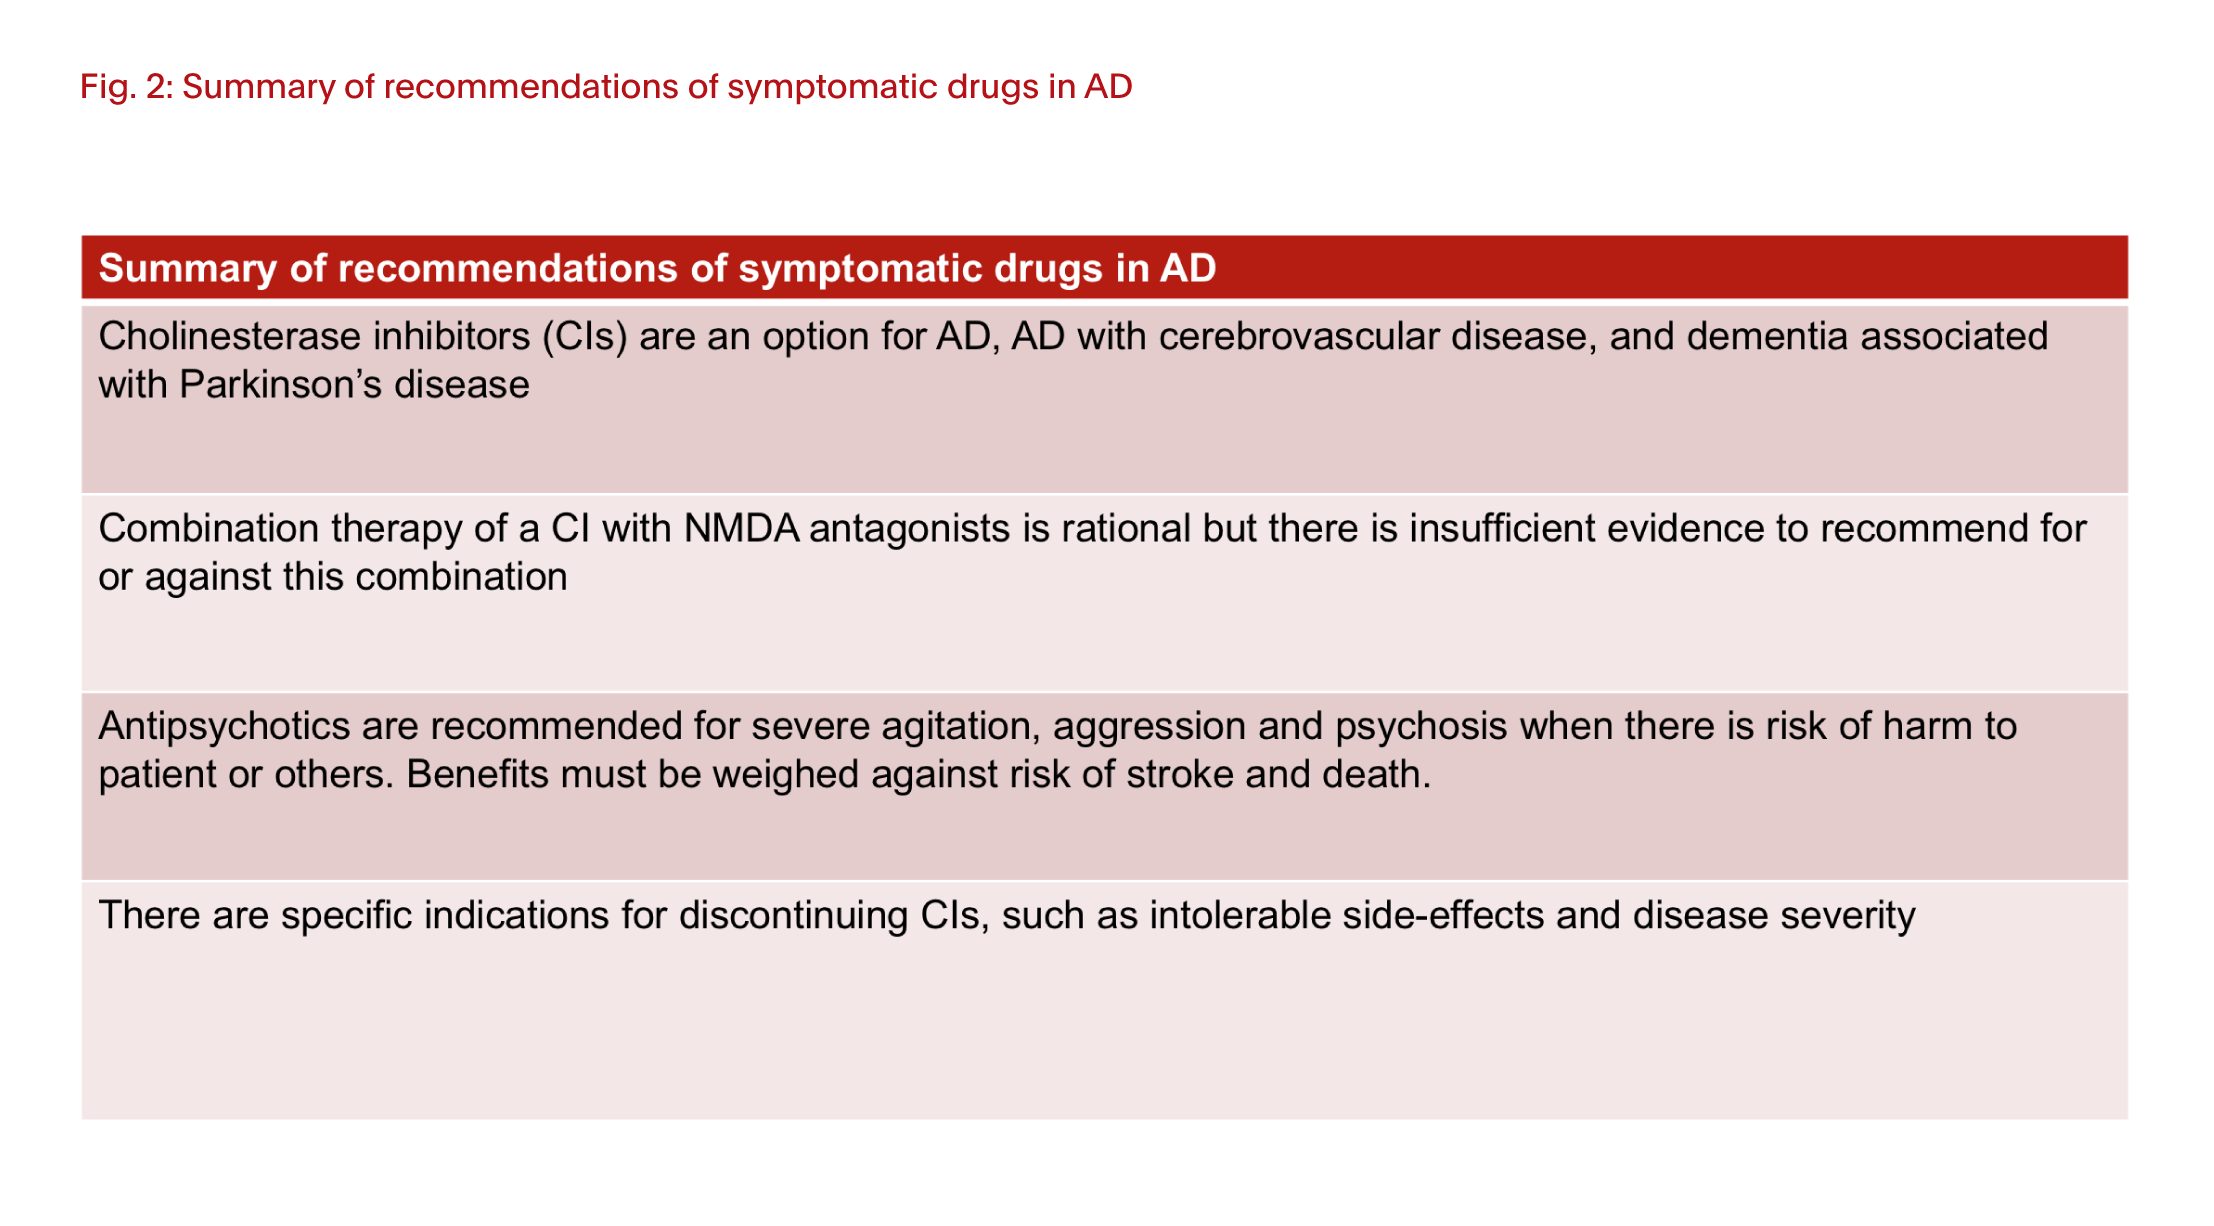 Summary of recommendations of symptomatic drugs